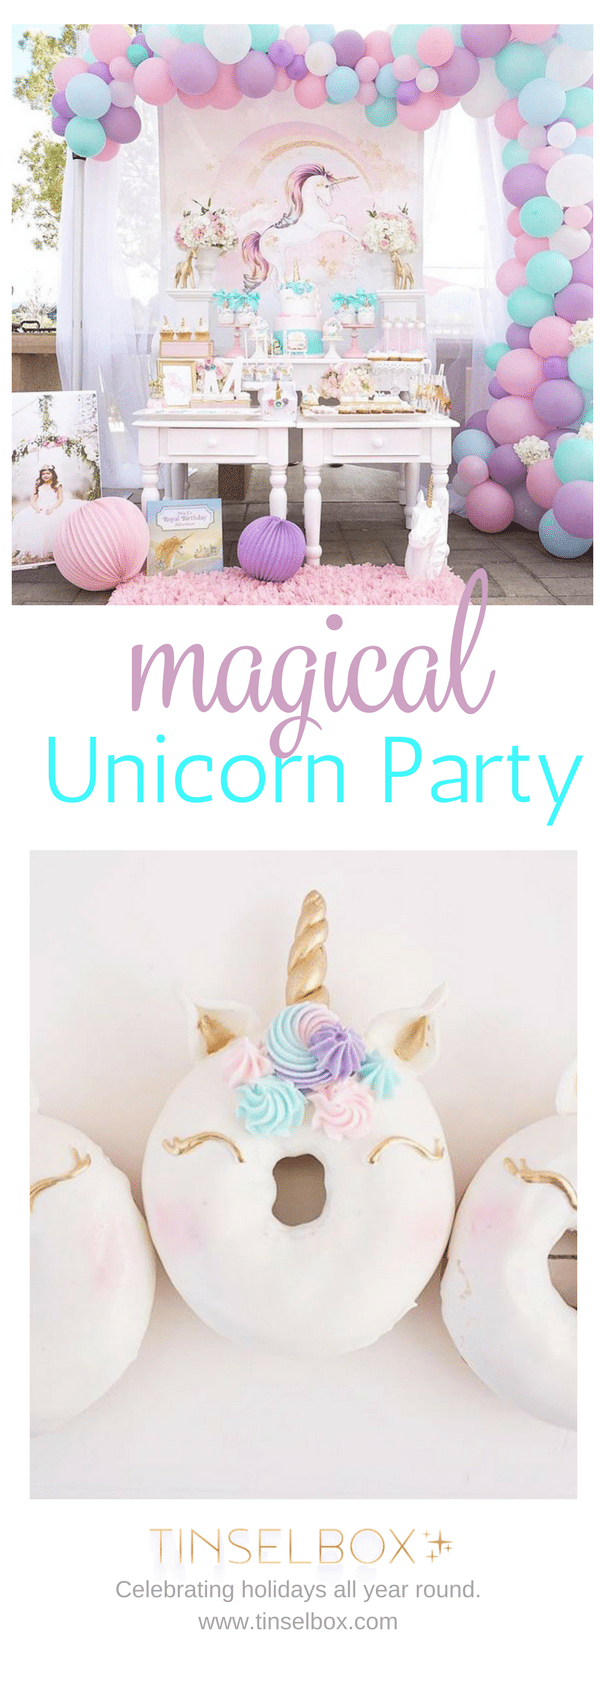 Magical unicorn party in purple, blue and gold.